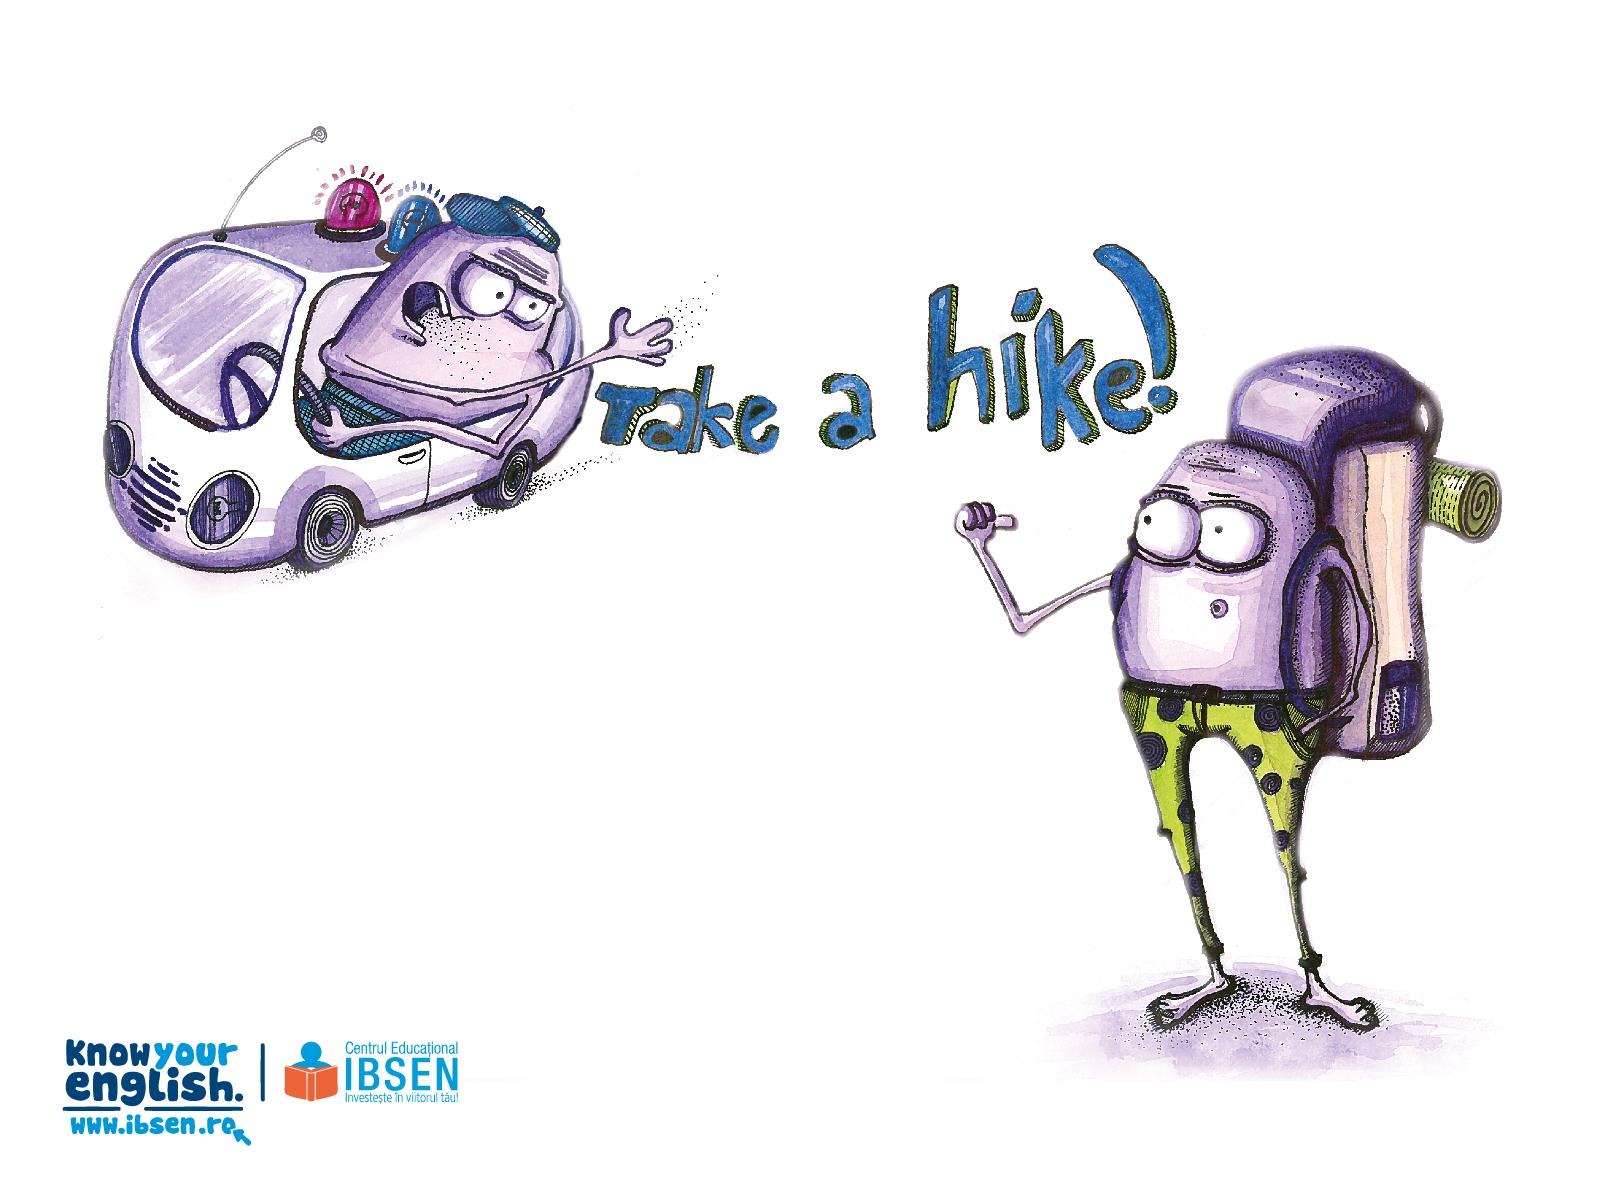 IBSEN Print Ad -  Know Your English, Take a hike